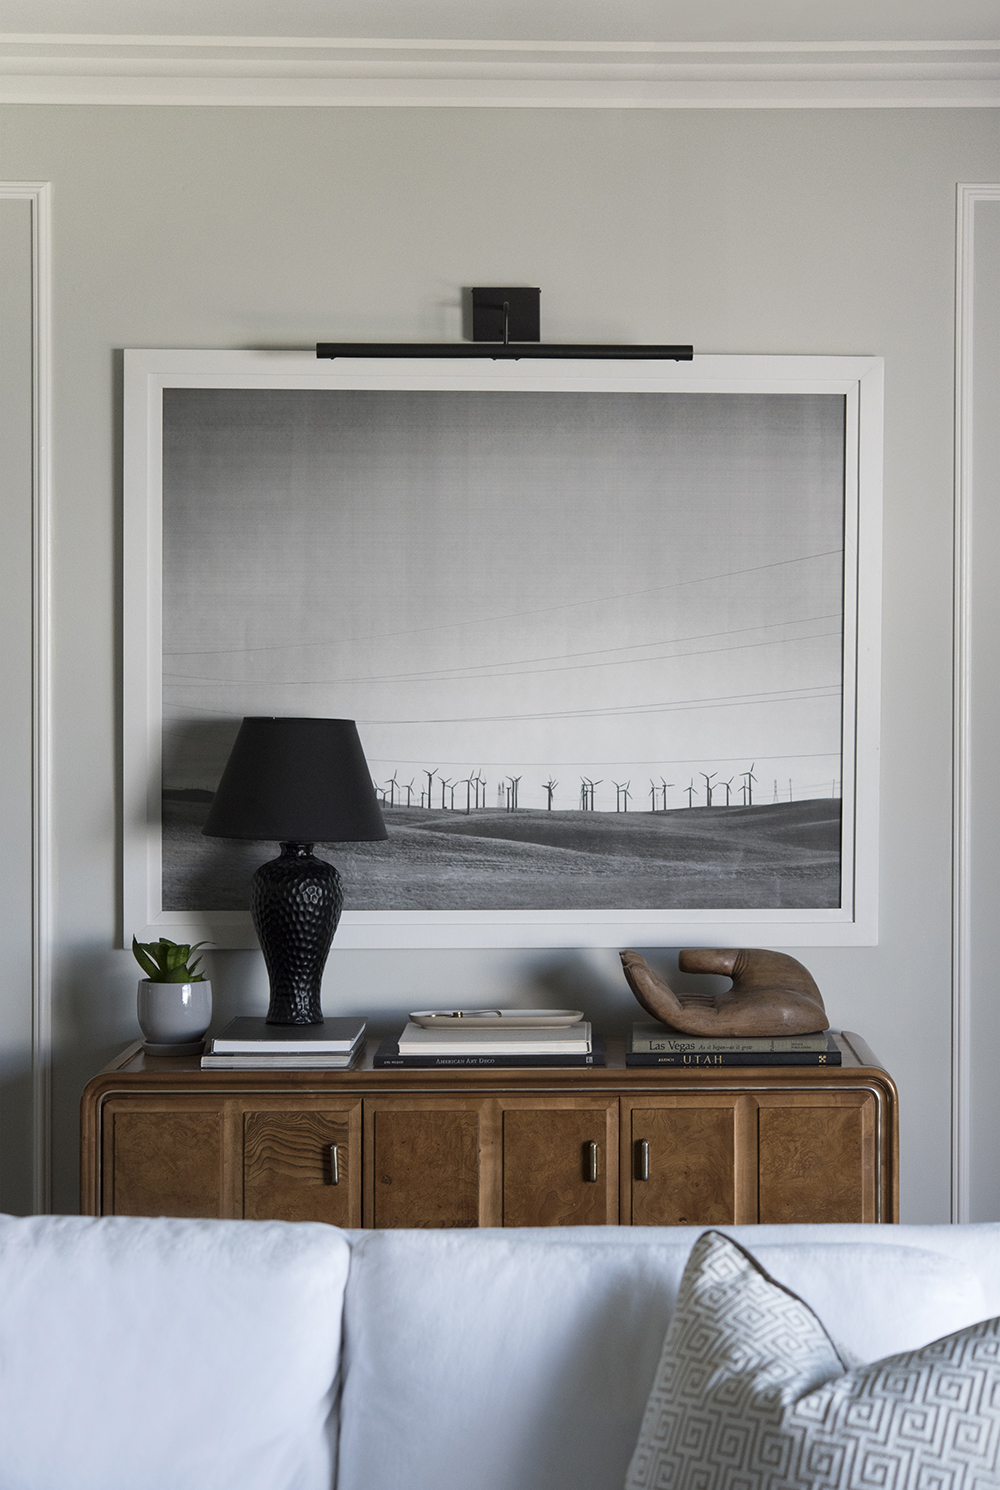 5 Ways to Score Quality, High-End Furniture On a Budget - roomfortuesday.com